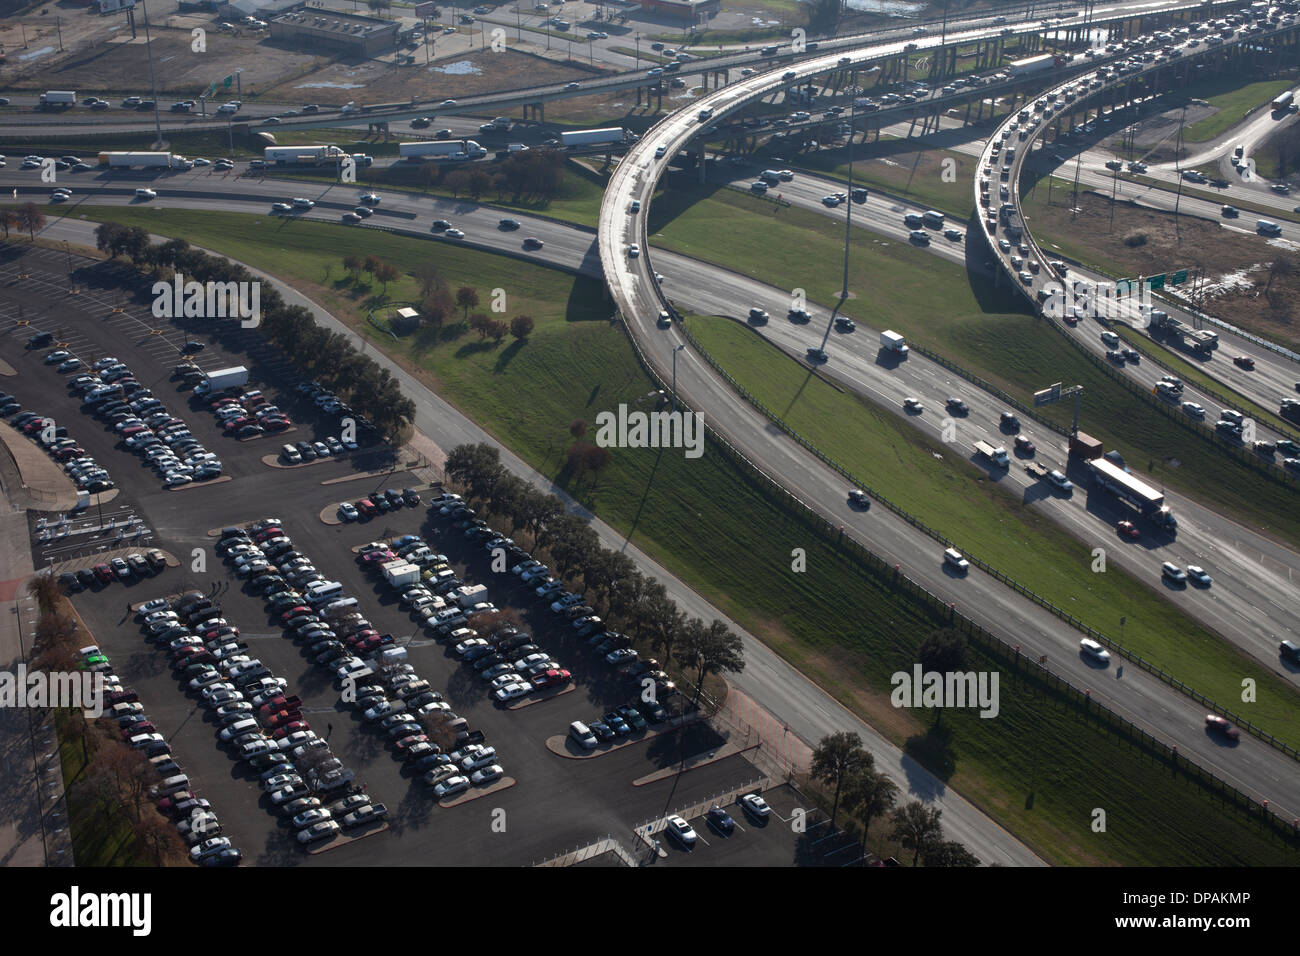 Dallas highways, Texas, United States, December 12, 2013. - Stock Image